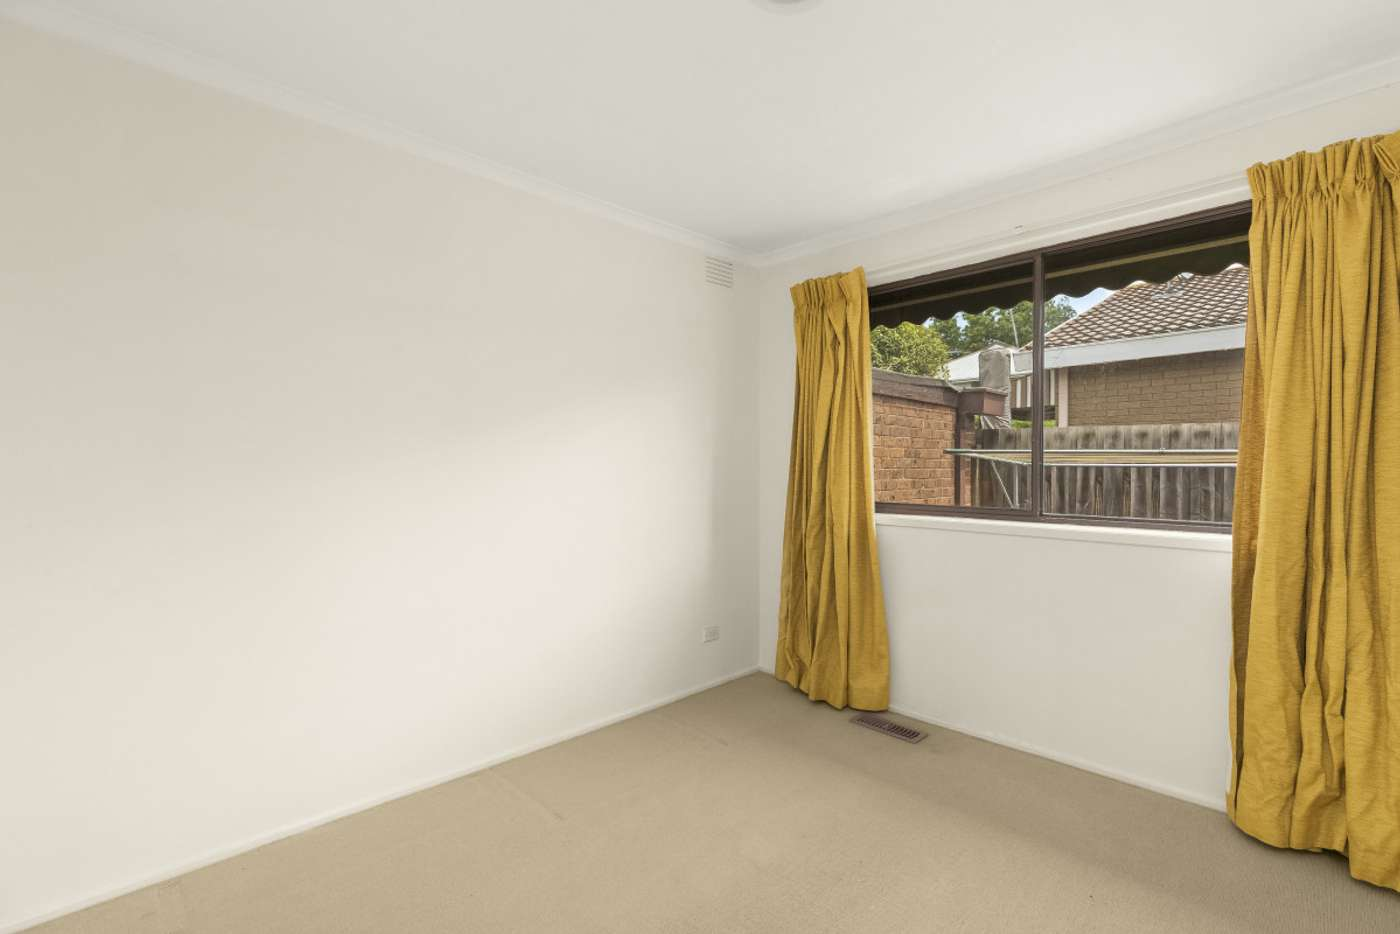 Sixth view of Homely unit listing, 3/209 Neerim Road, Carnegie VIC 3163